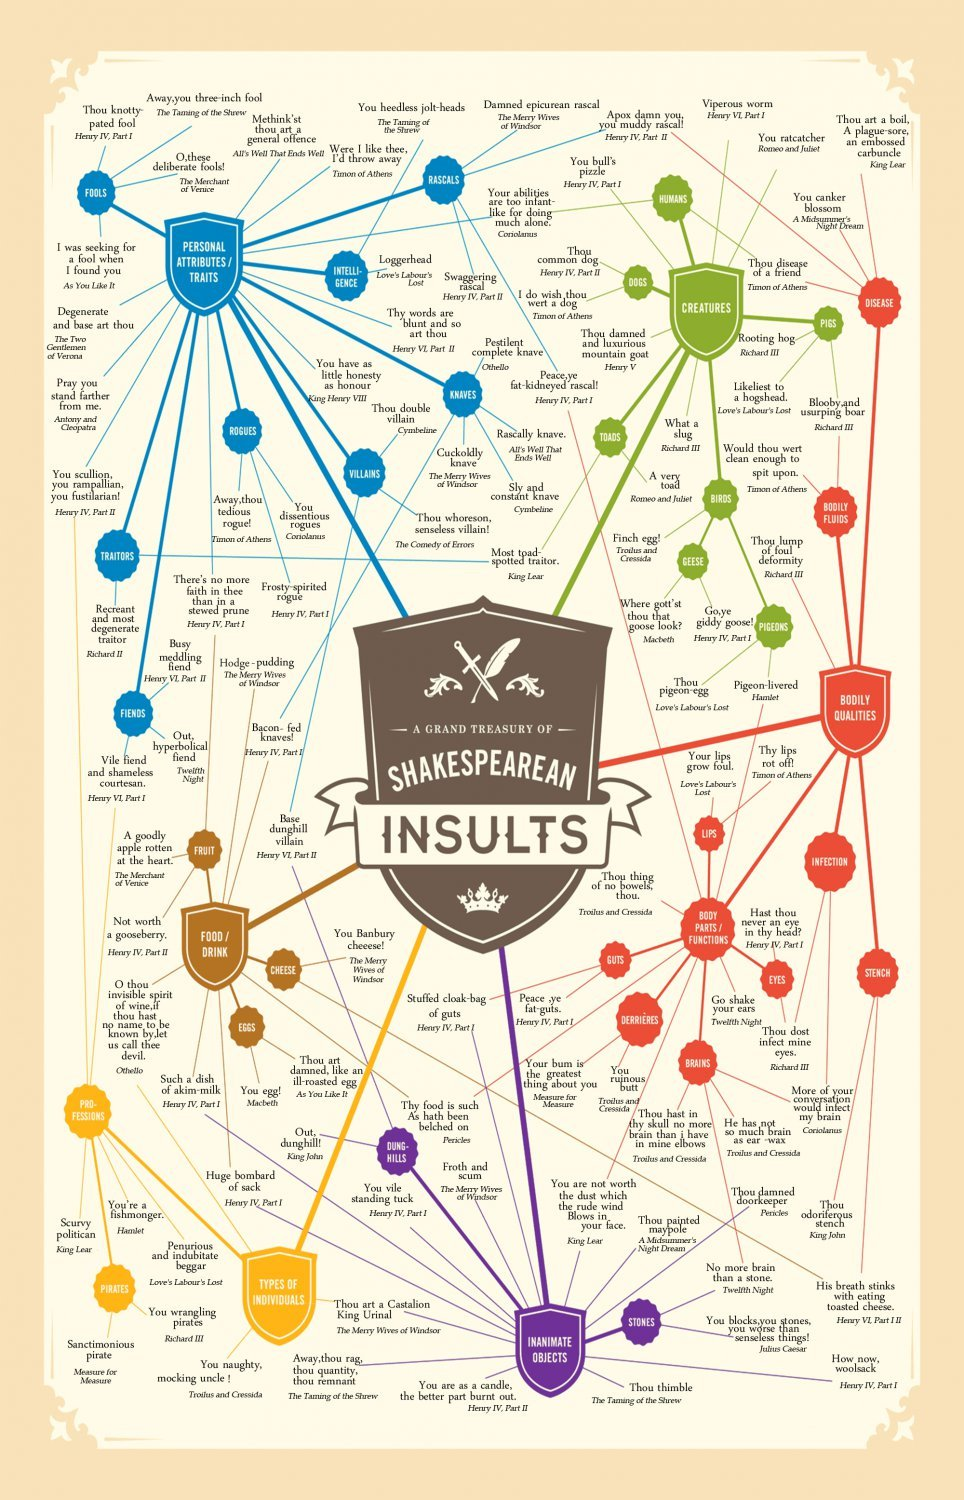 Shakespearean Insults Chart 13x19 inches Poster Print